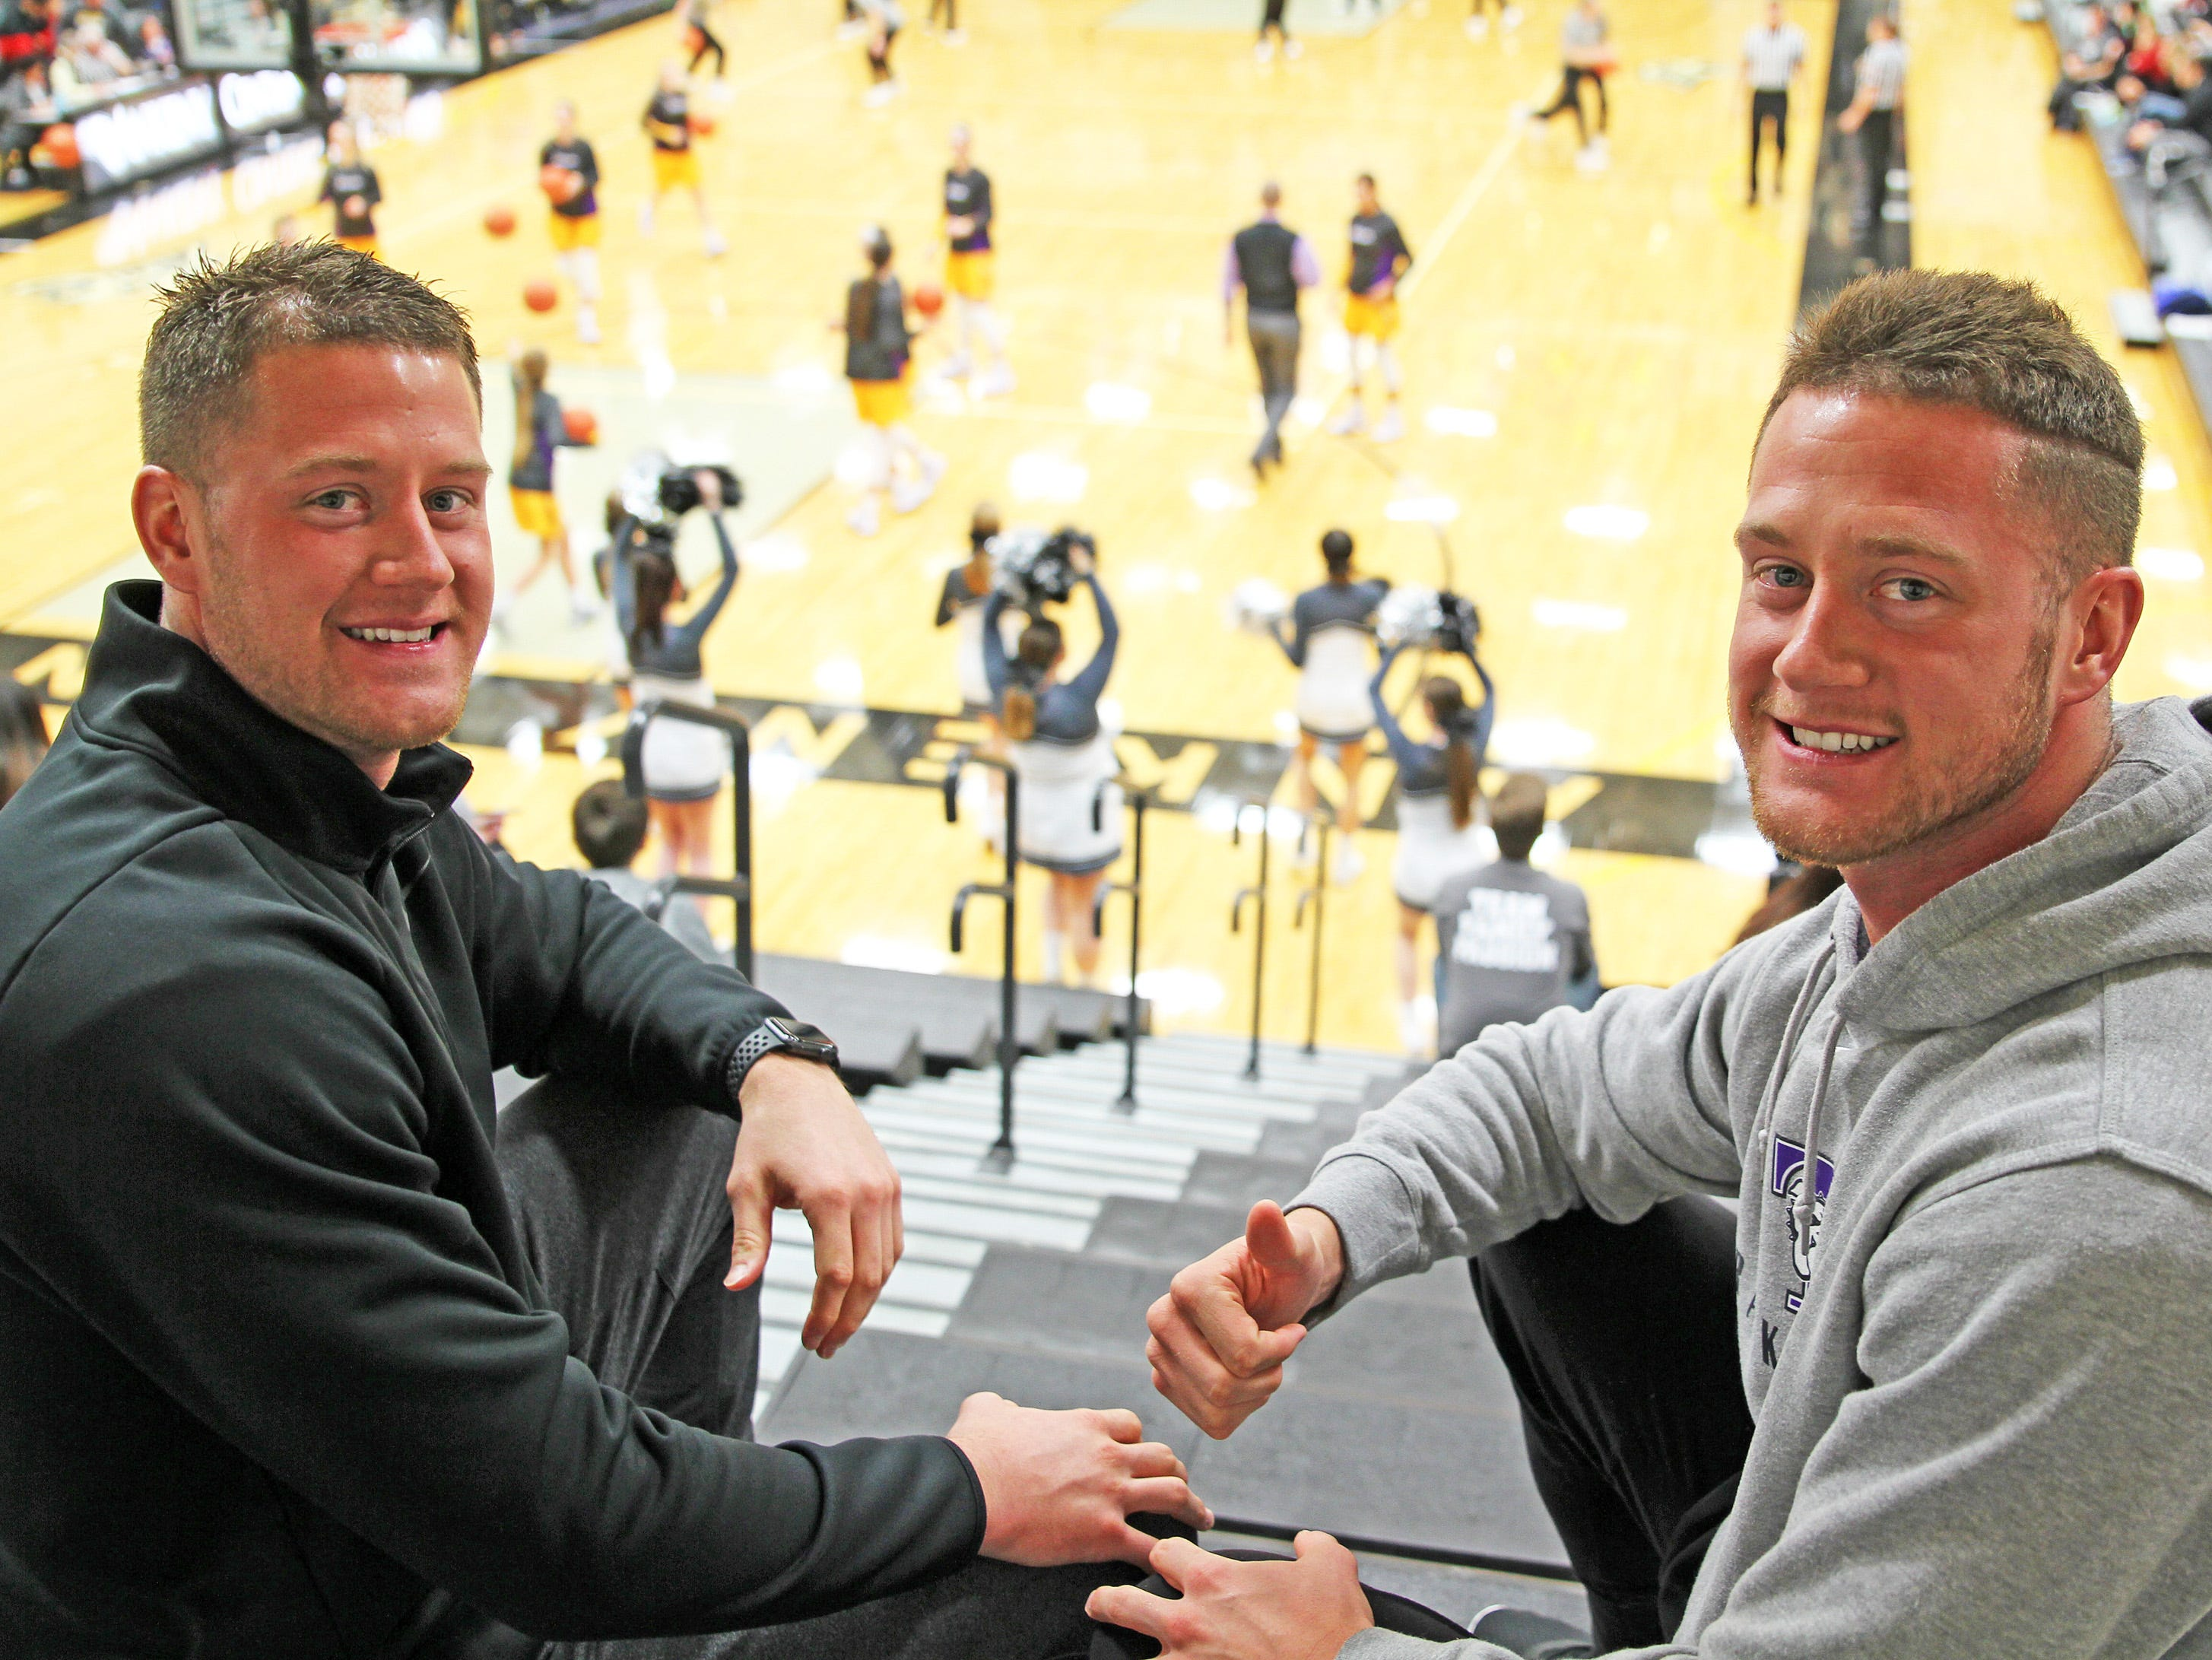 Former Ankeny basketball standouts Cole and Cory Myers, Class of 2012, enjoy Friday Night hoops as the Johnston Dragons compete against the Ankeny Centennial Jaguars in high school girls basketball on Friday, January 4, 2019 at Ankeny Centennial High School.